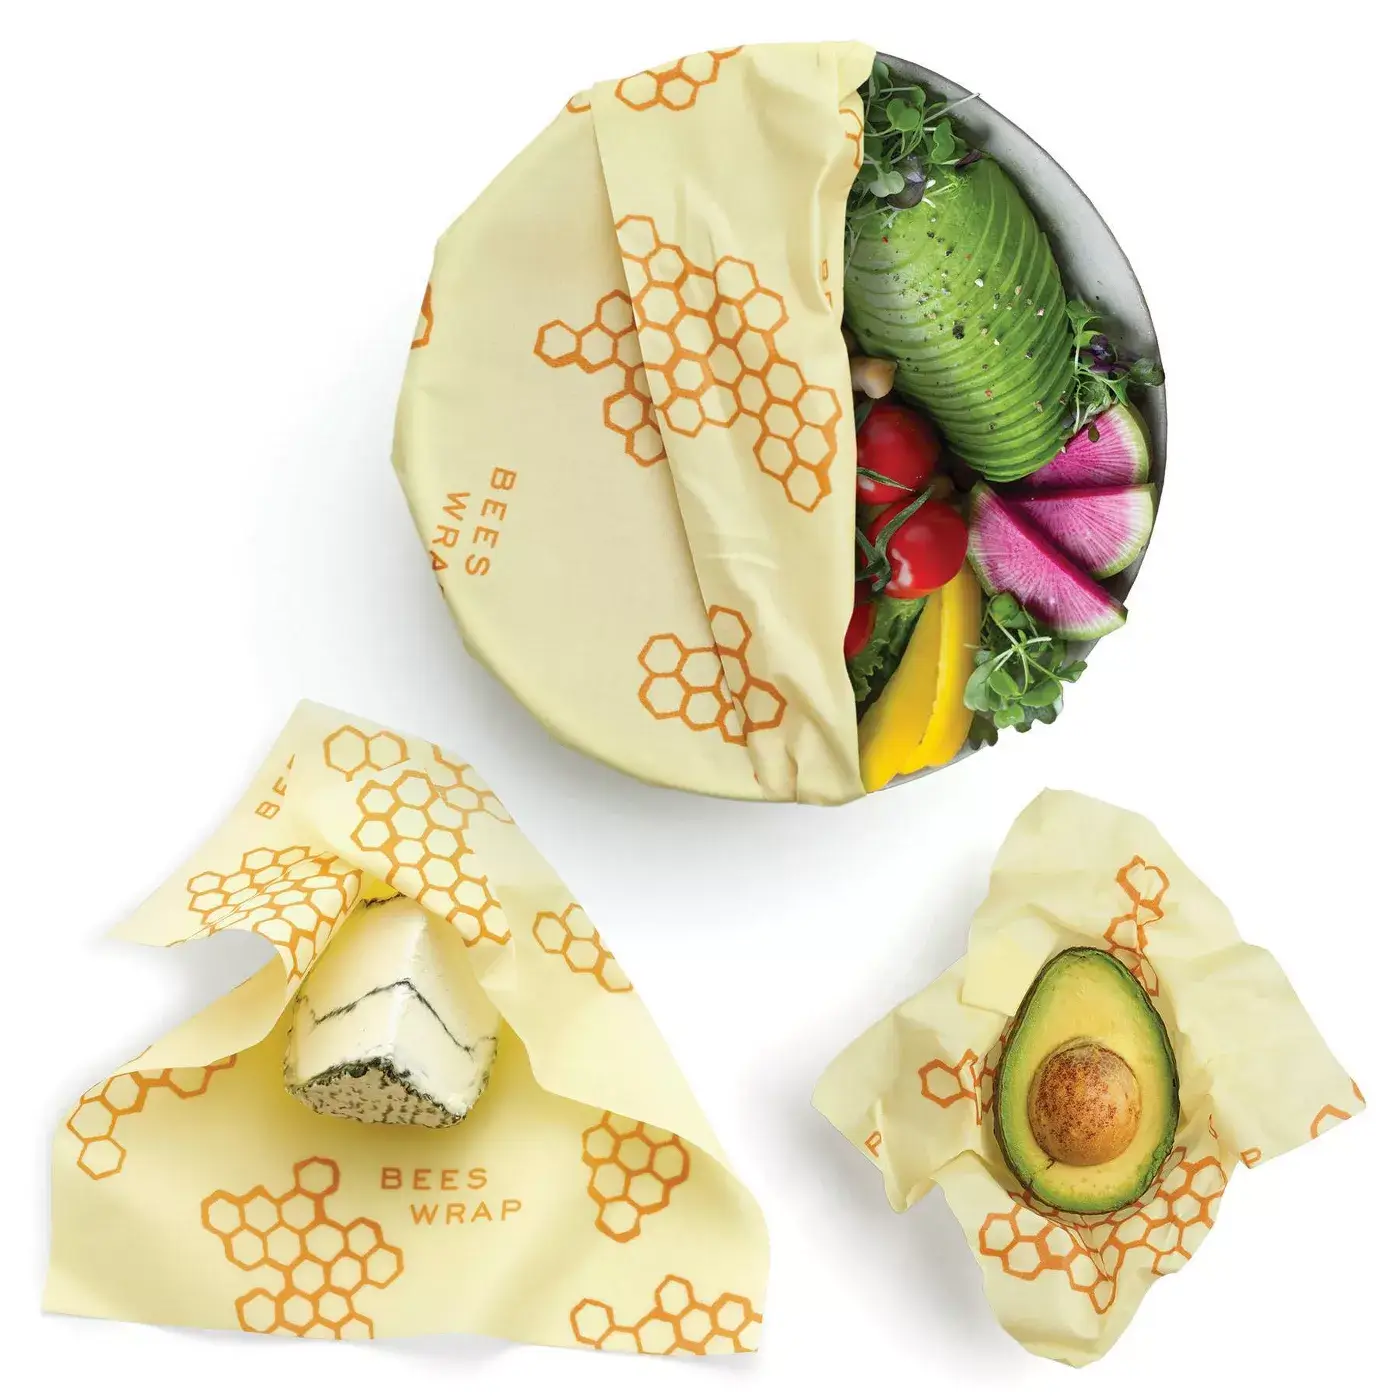 Bee's Wrap Sustainable Food Storage Wrap